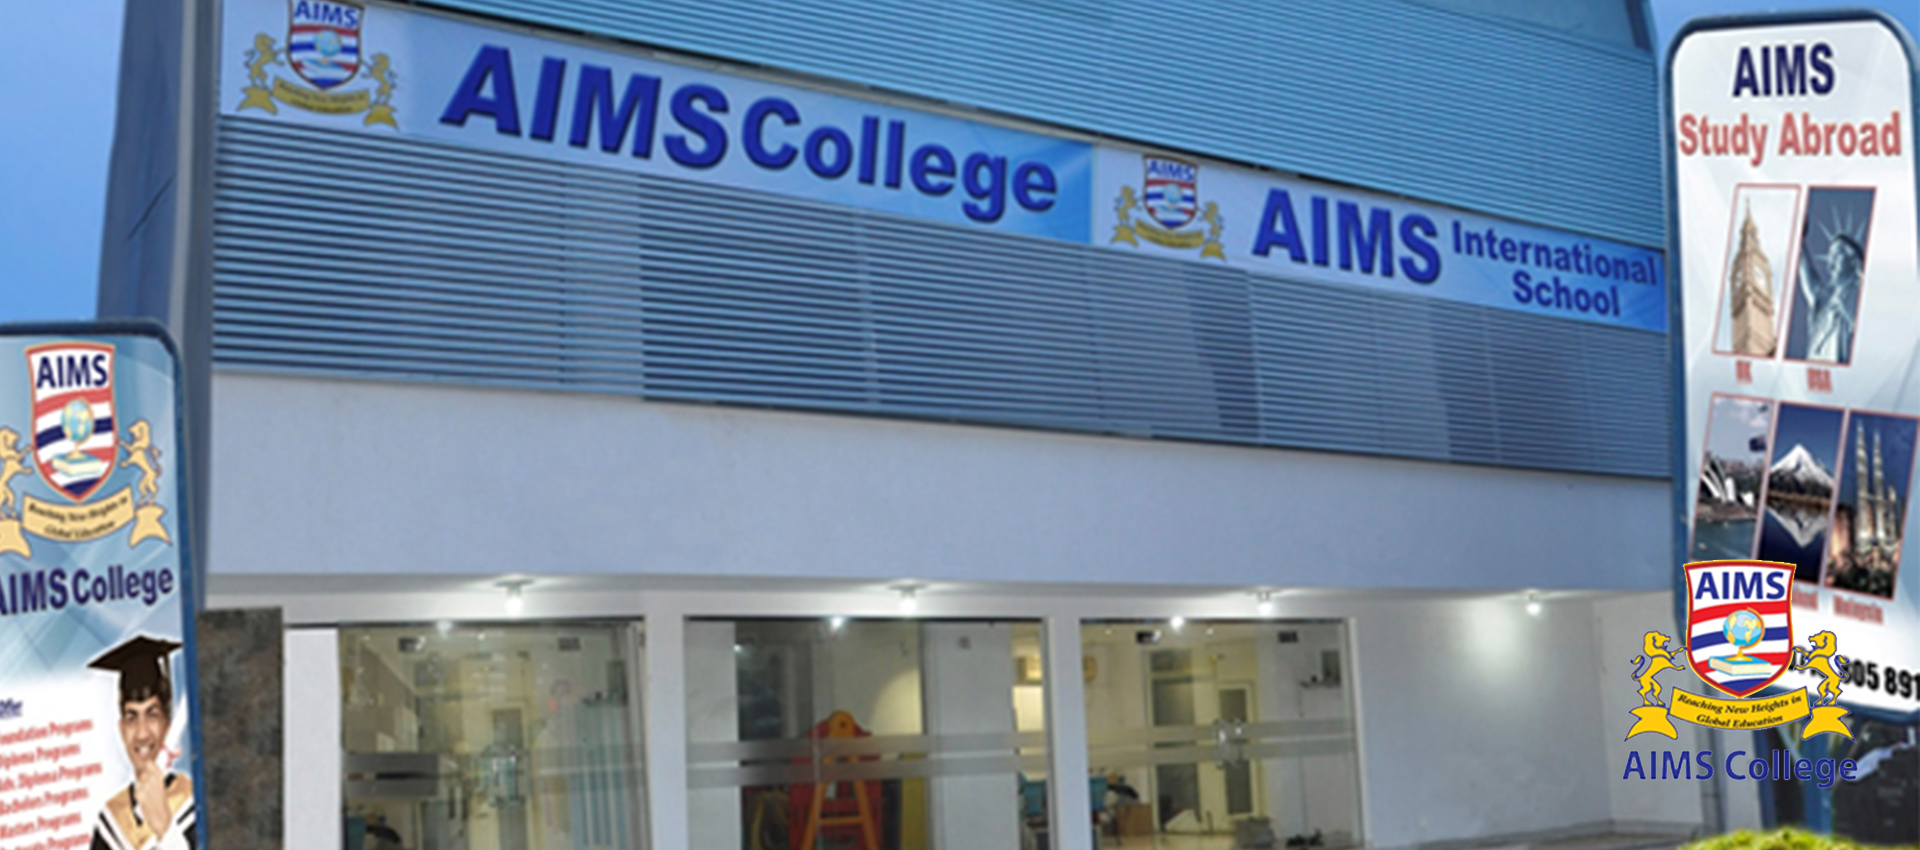 Yesman.lk - Cover Image - AIMS College